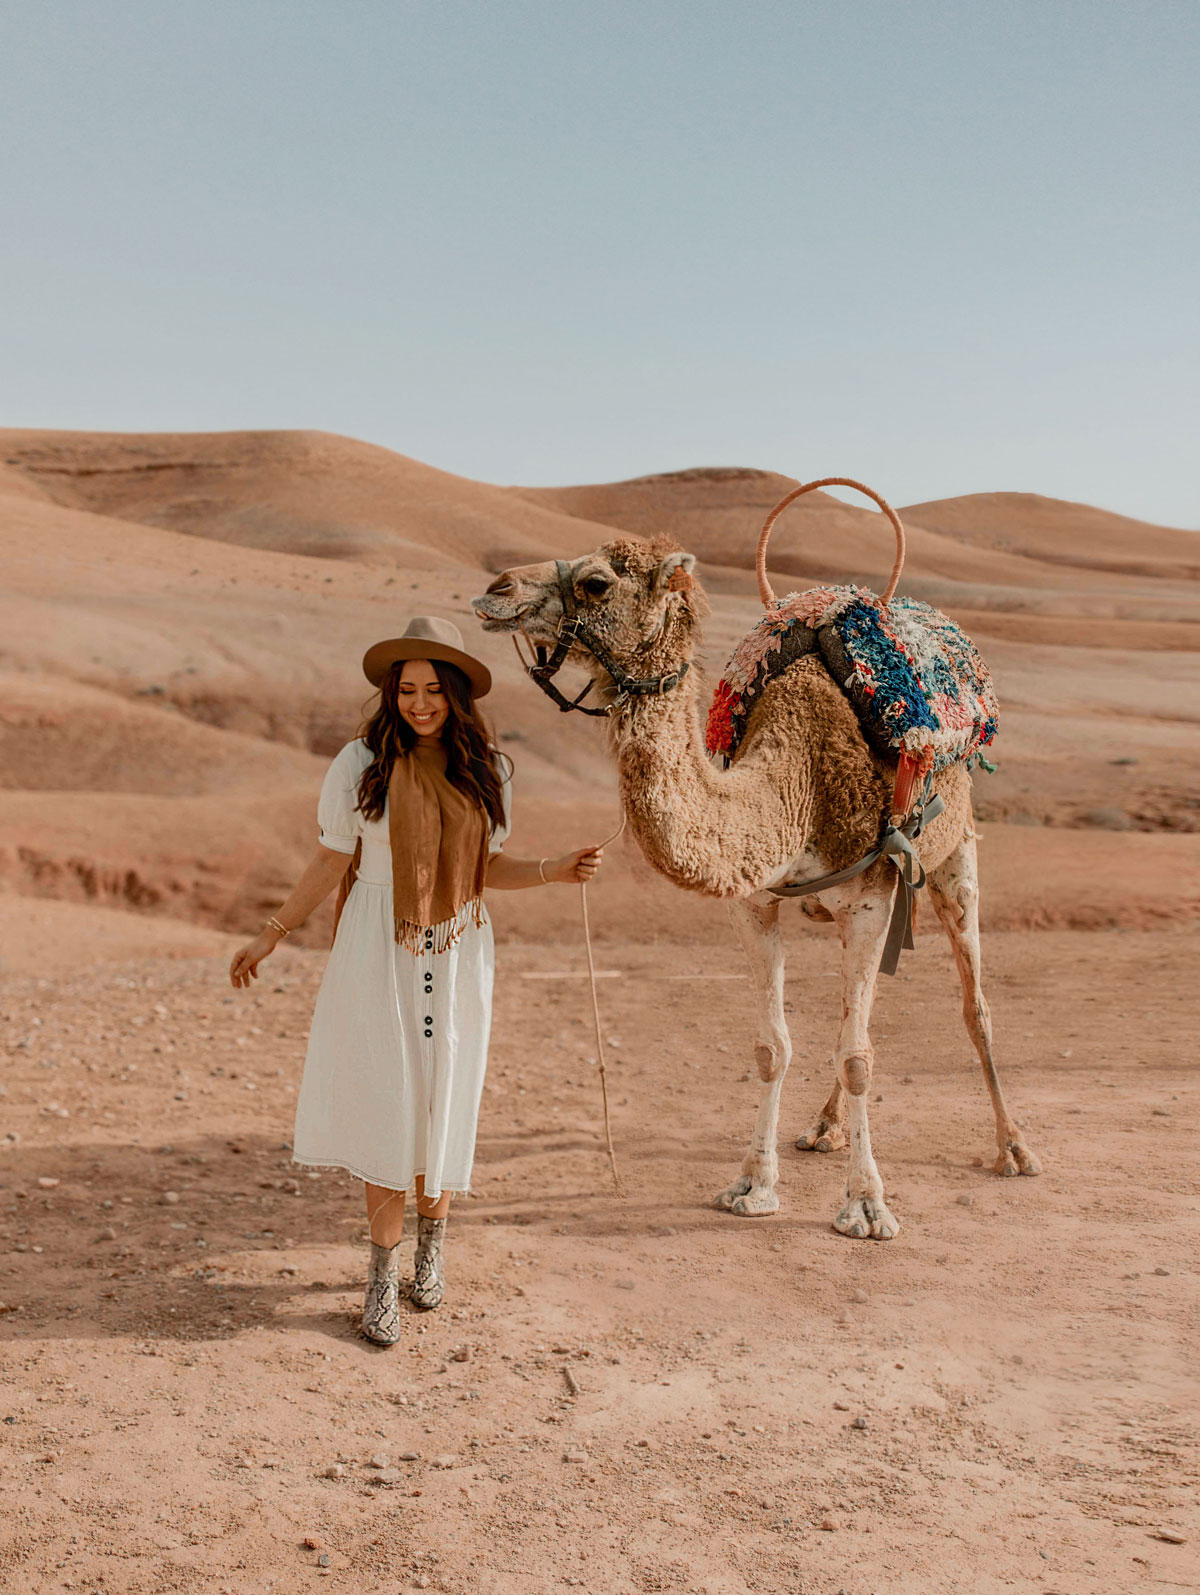 Top-things-to-do-in-marrakech-Bucket-list-kelseyinlondon-Kelsey-Heinrichs--What-to-do-in-marrakech--Where-to-go-in-marrakech-top-places-in-marrakech-Agafay-Desert